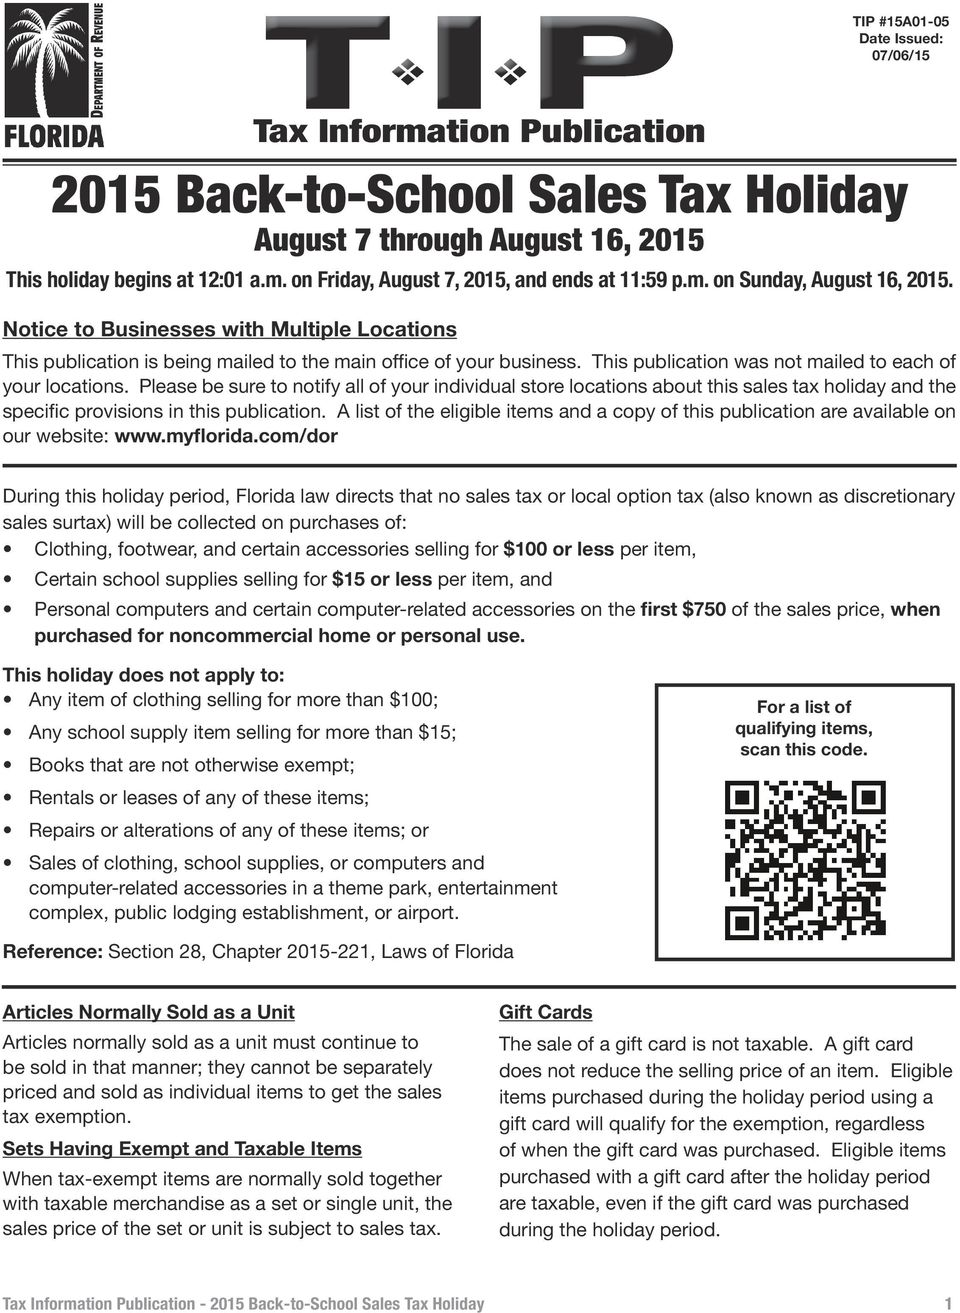 This publication was not mailed to each of your locations. Please be sure to notify all of your individual store locations about this sales tax holiday and the specific provisions in this publication.